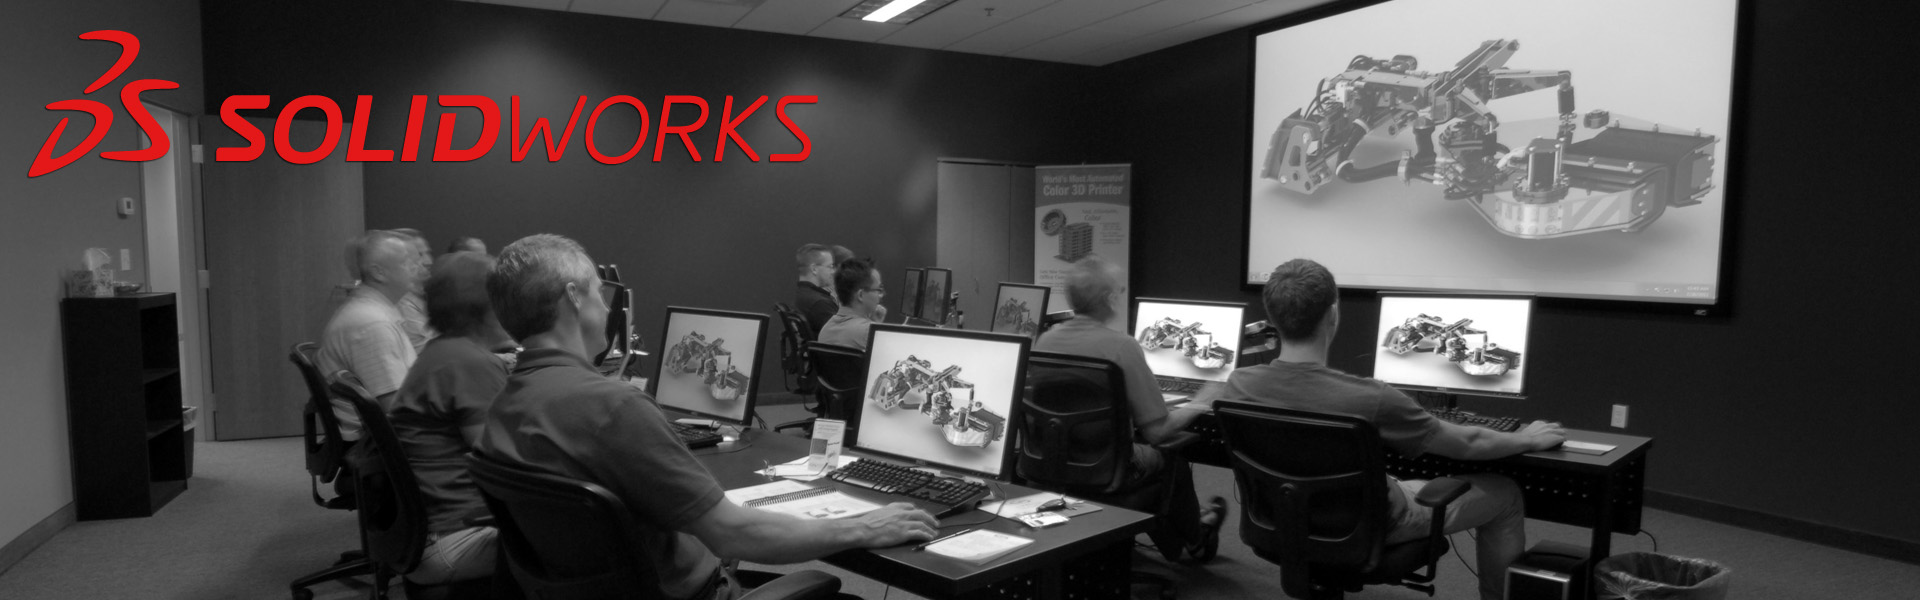 solidworks-training.jpg